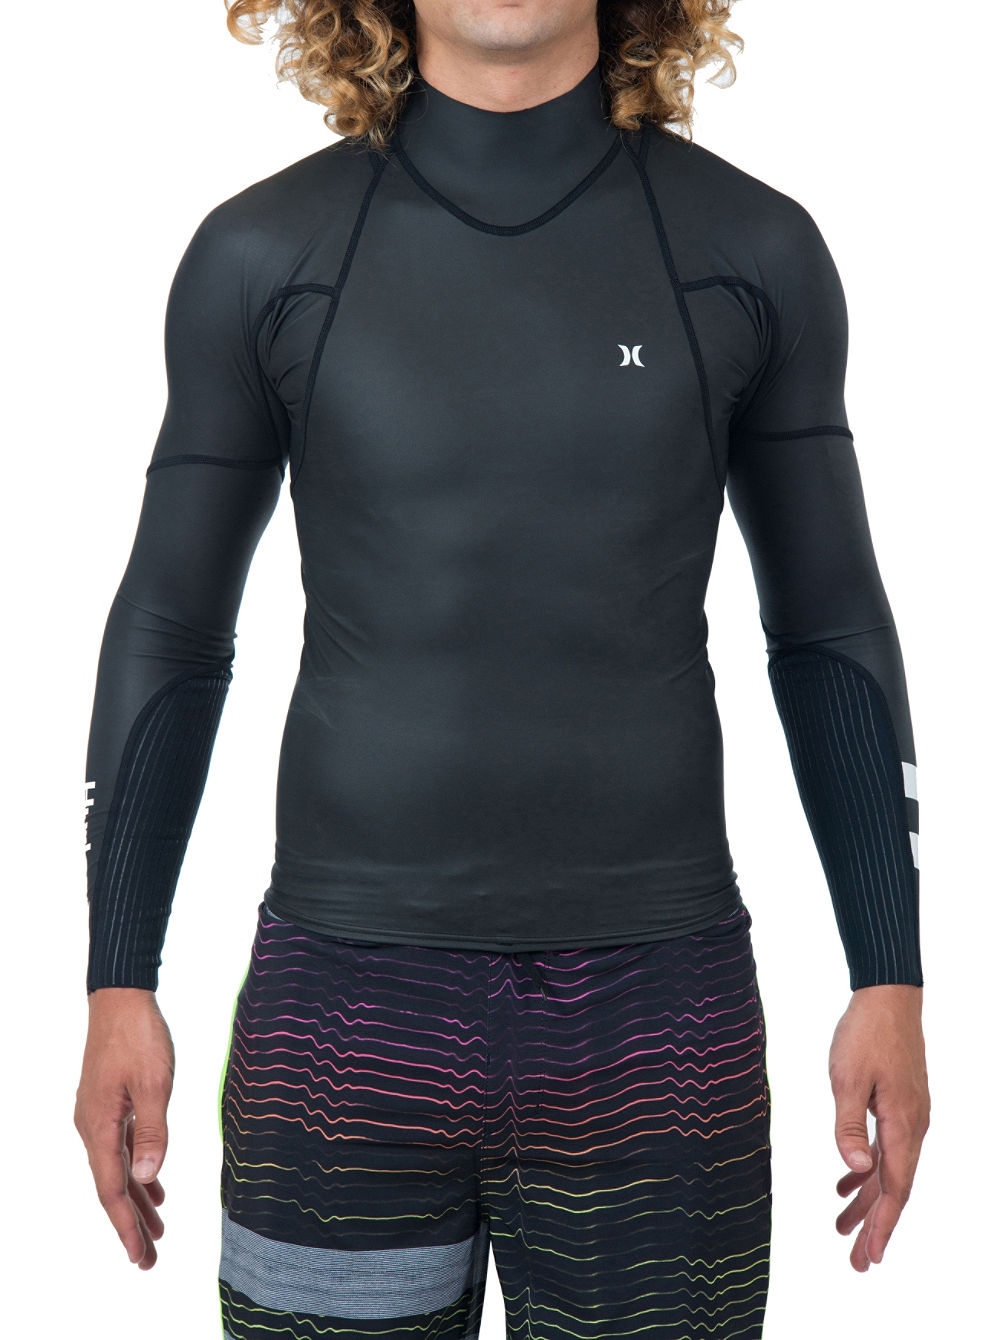 Phantom Windskin 2.0 Lycra LS